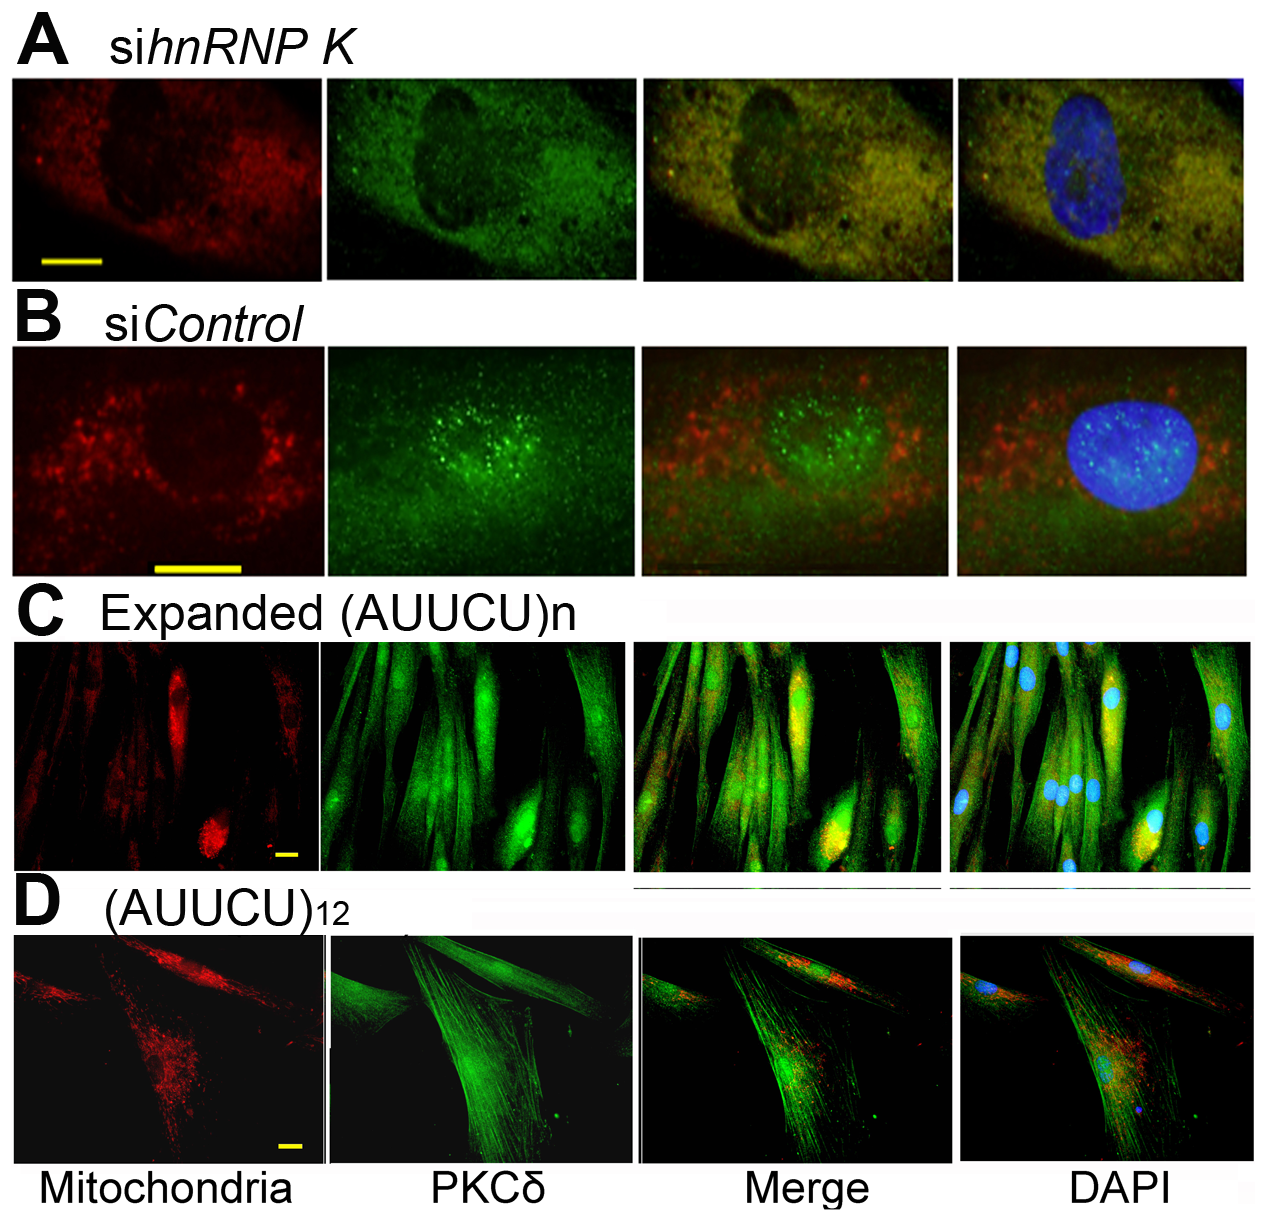 Targeted inactivation of <i>hnRNP K</i> in normal fibroblasts or expression of expanded AUUCU-RNA results in mitochondrial localization of PKCδ.